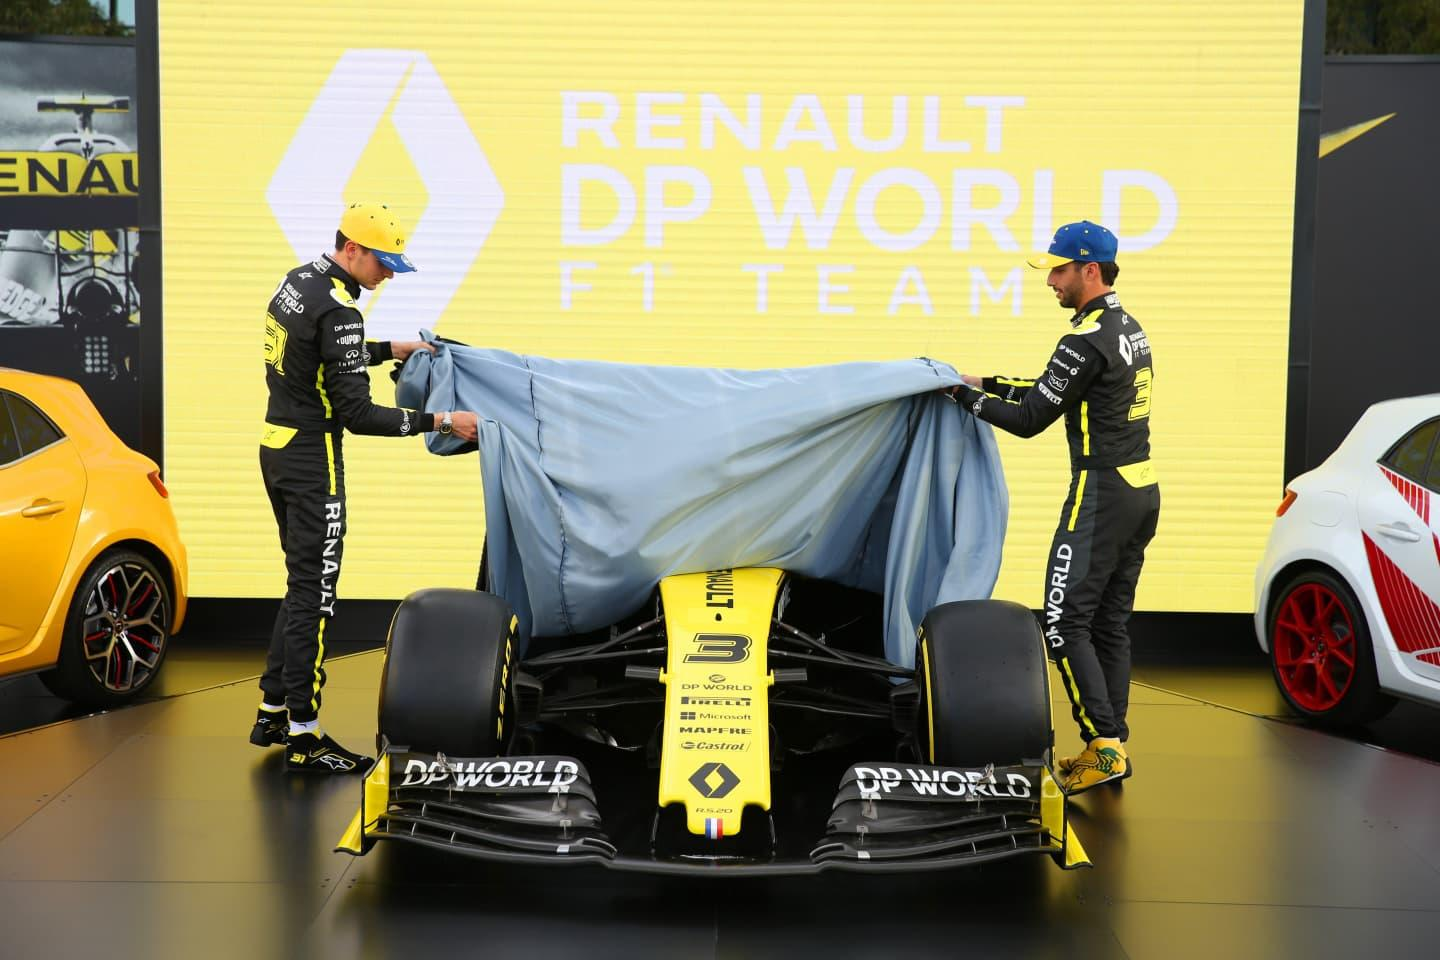 renault-dp-world-f1-team-2020-1